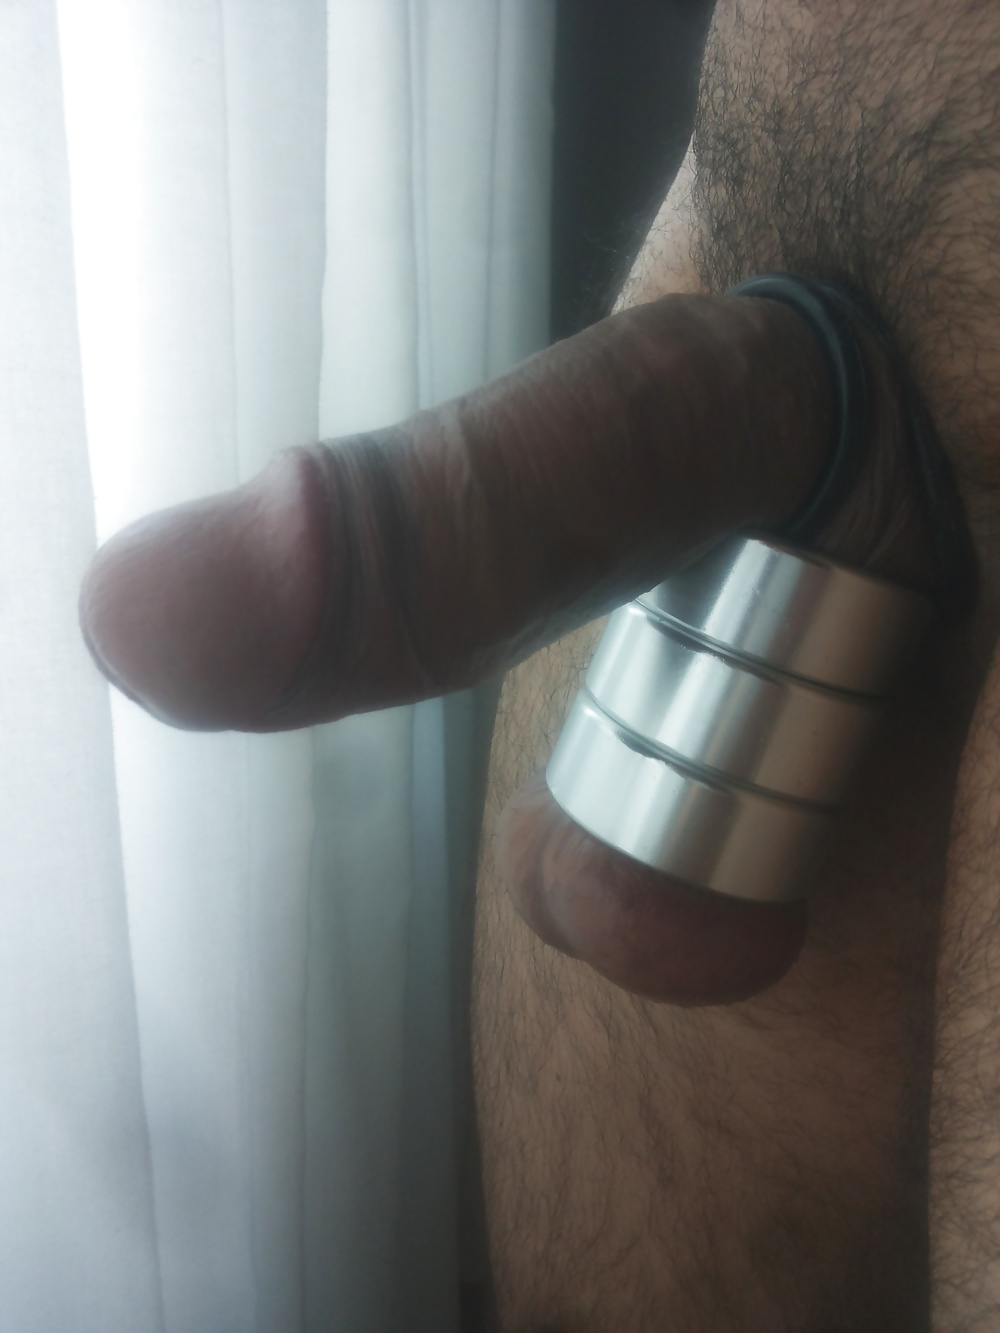 Lelo's Revamped Cock Ring, The Tor Ii